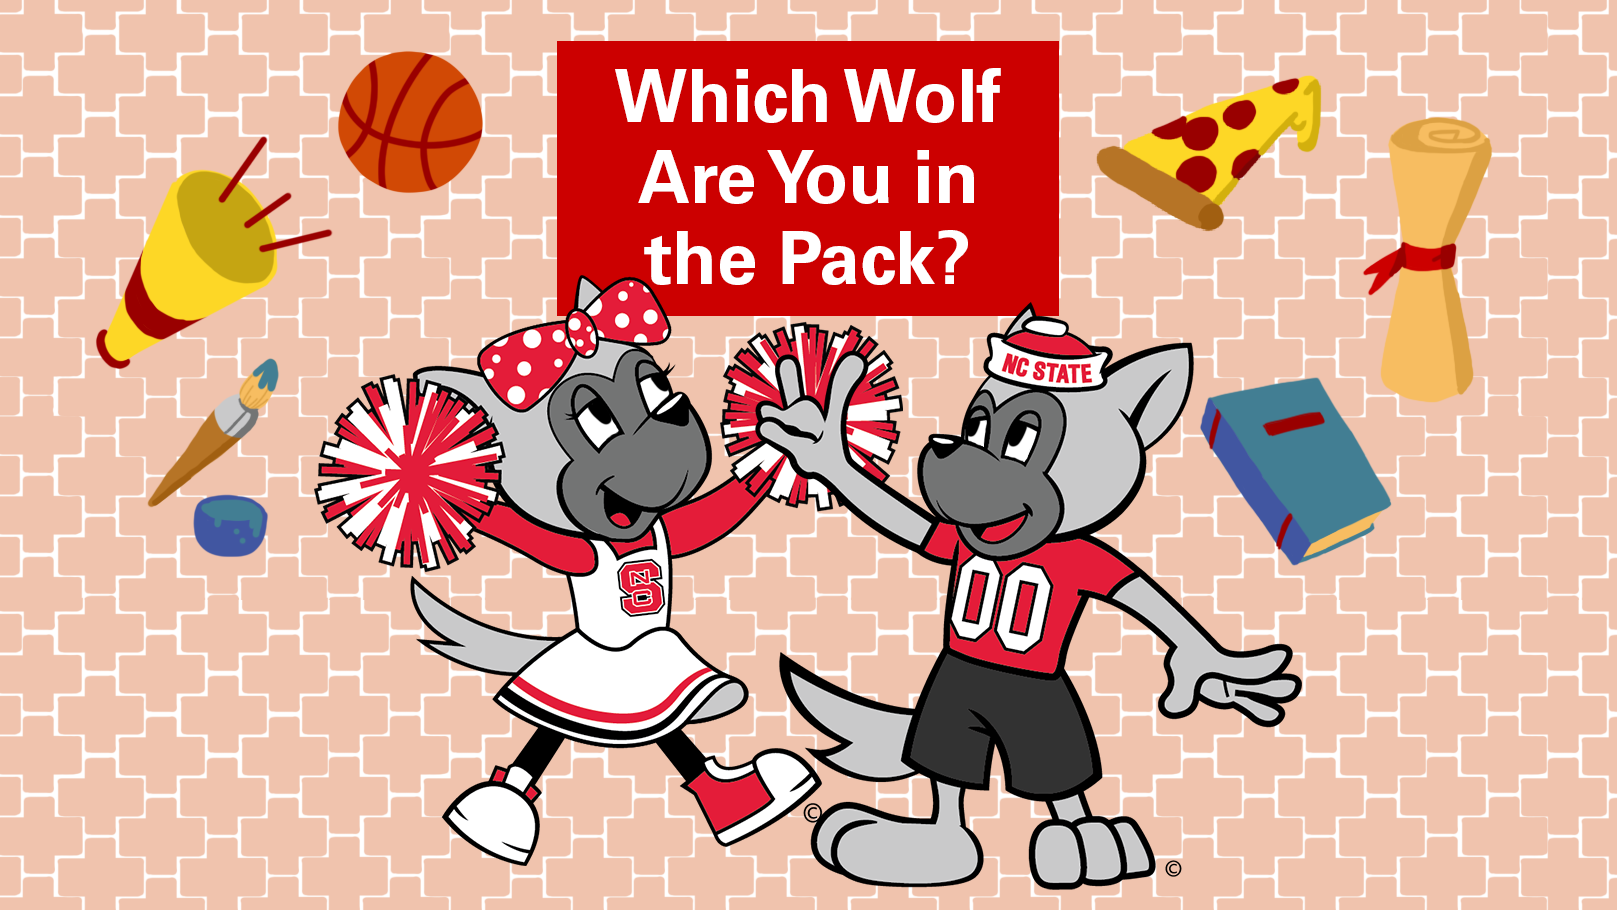 Which Wolf Are You in the Pack?